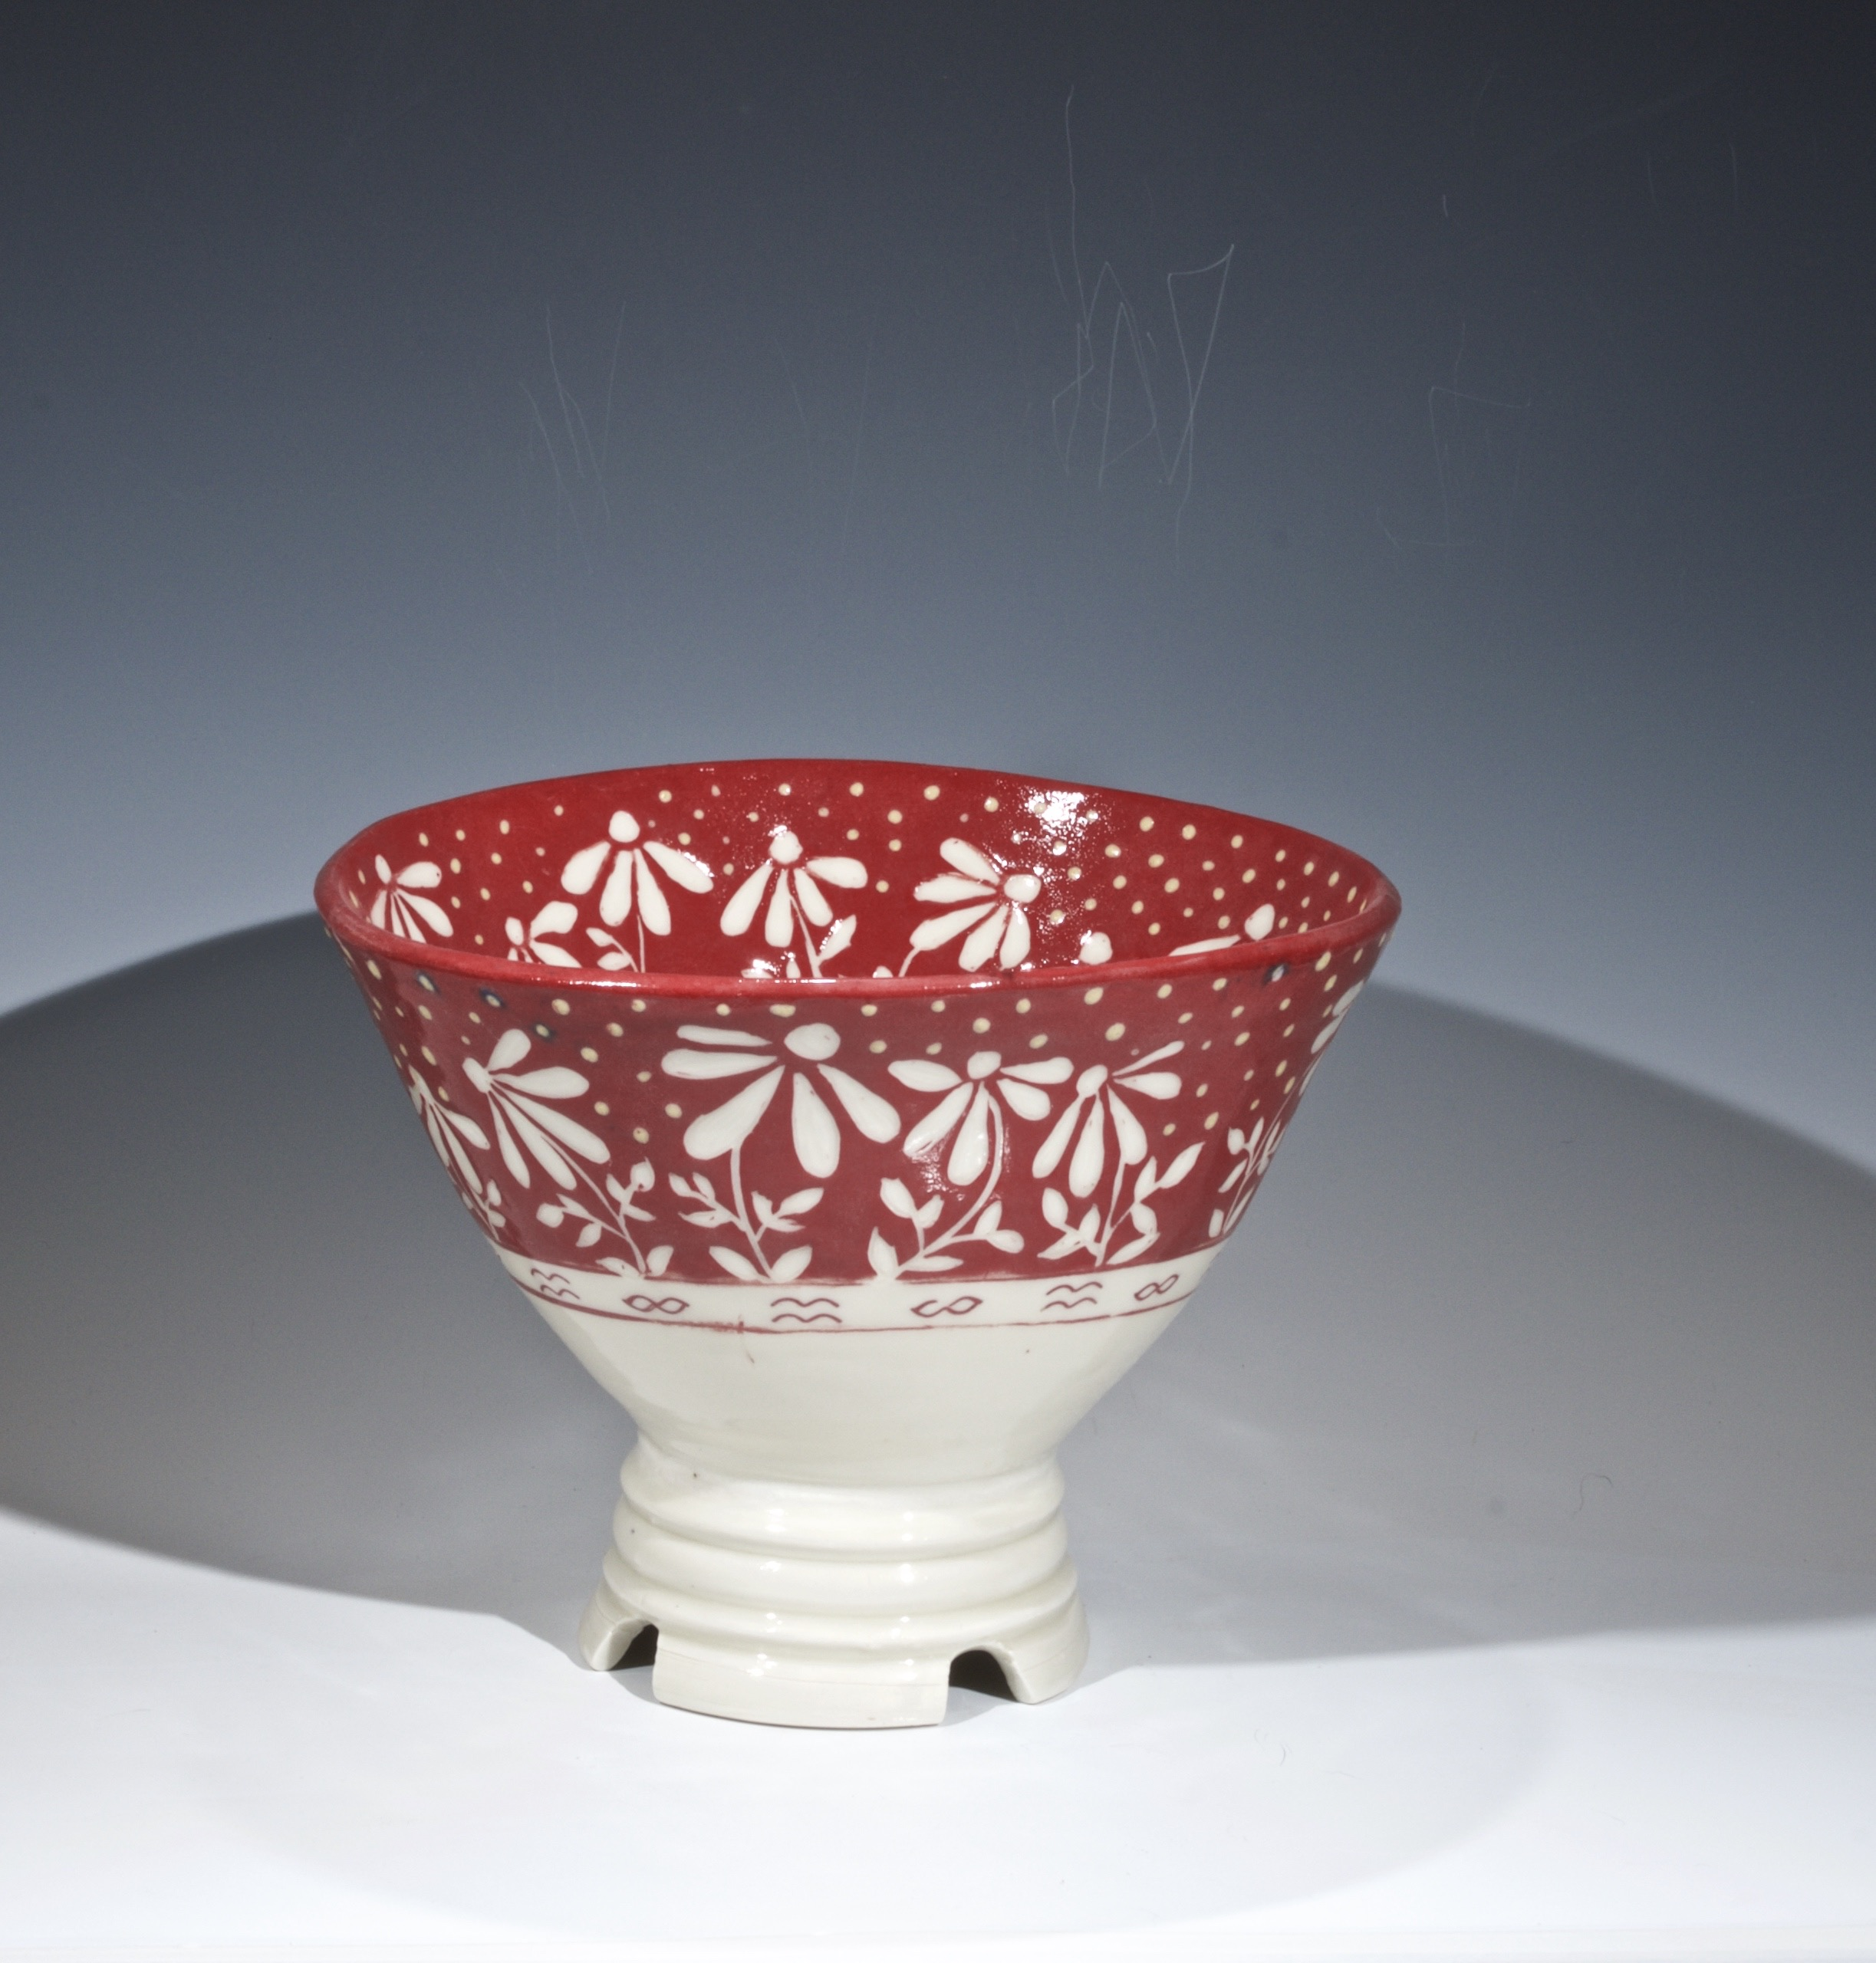 Withe stoneware with red slip